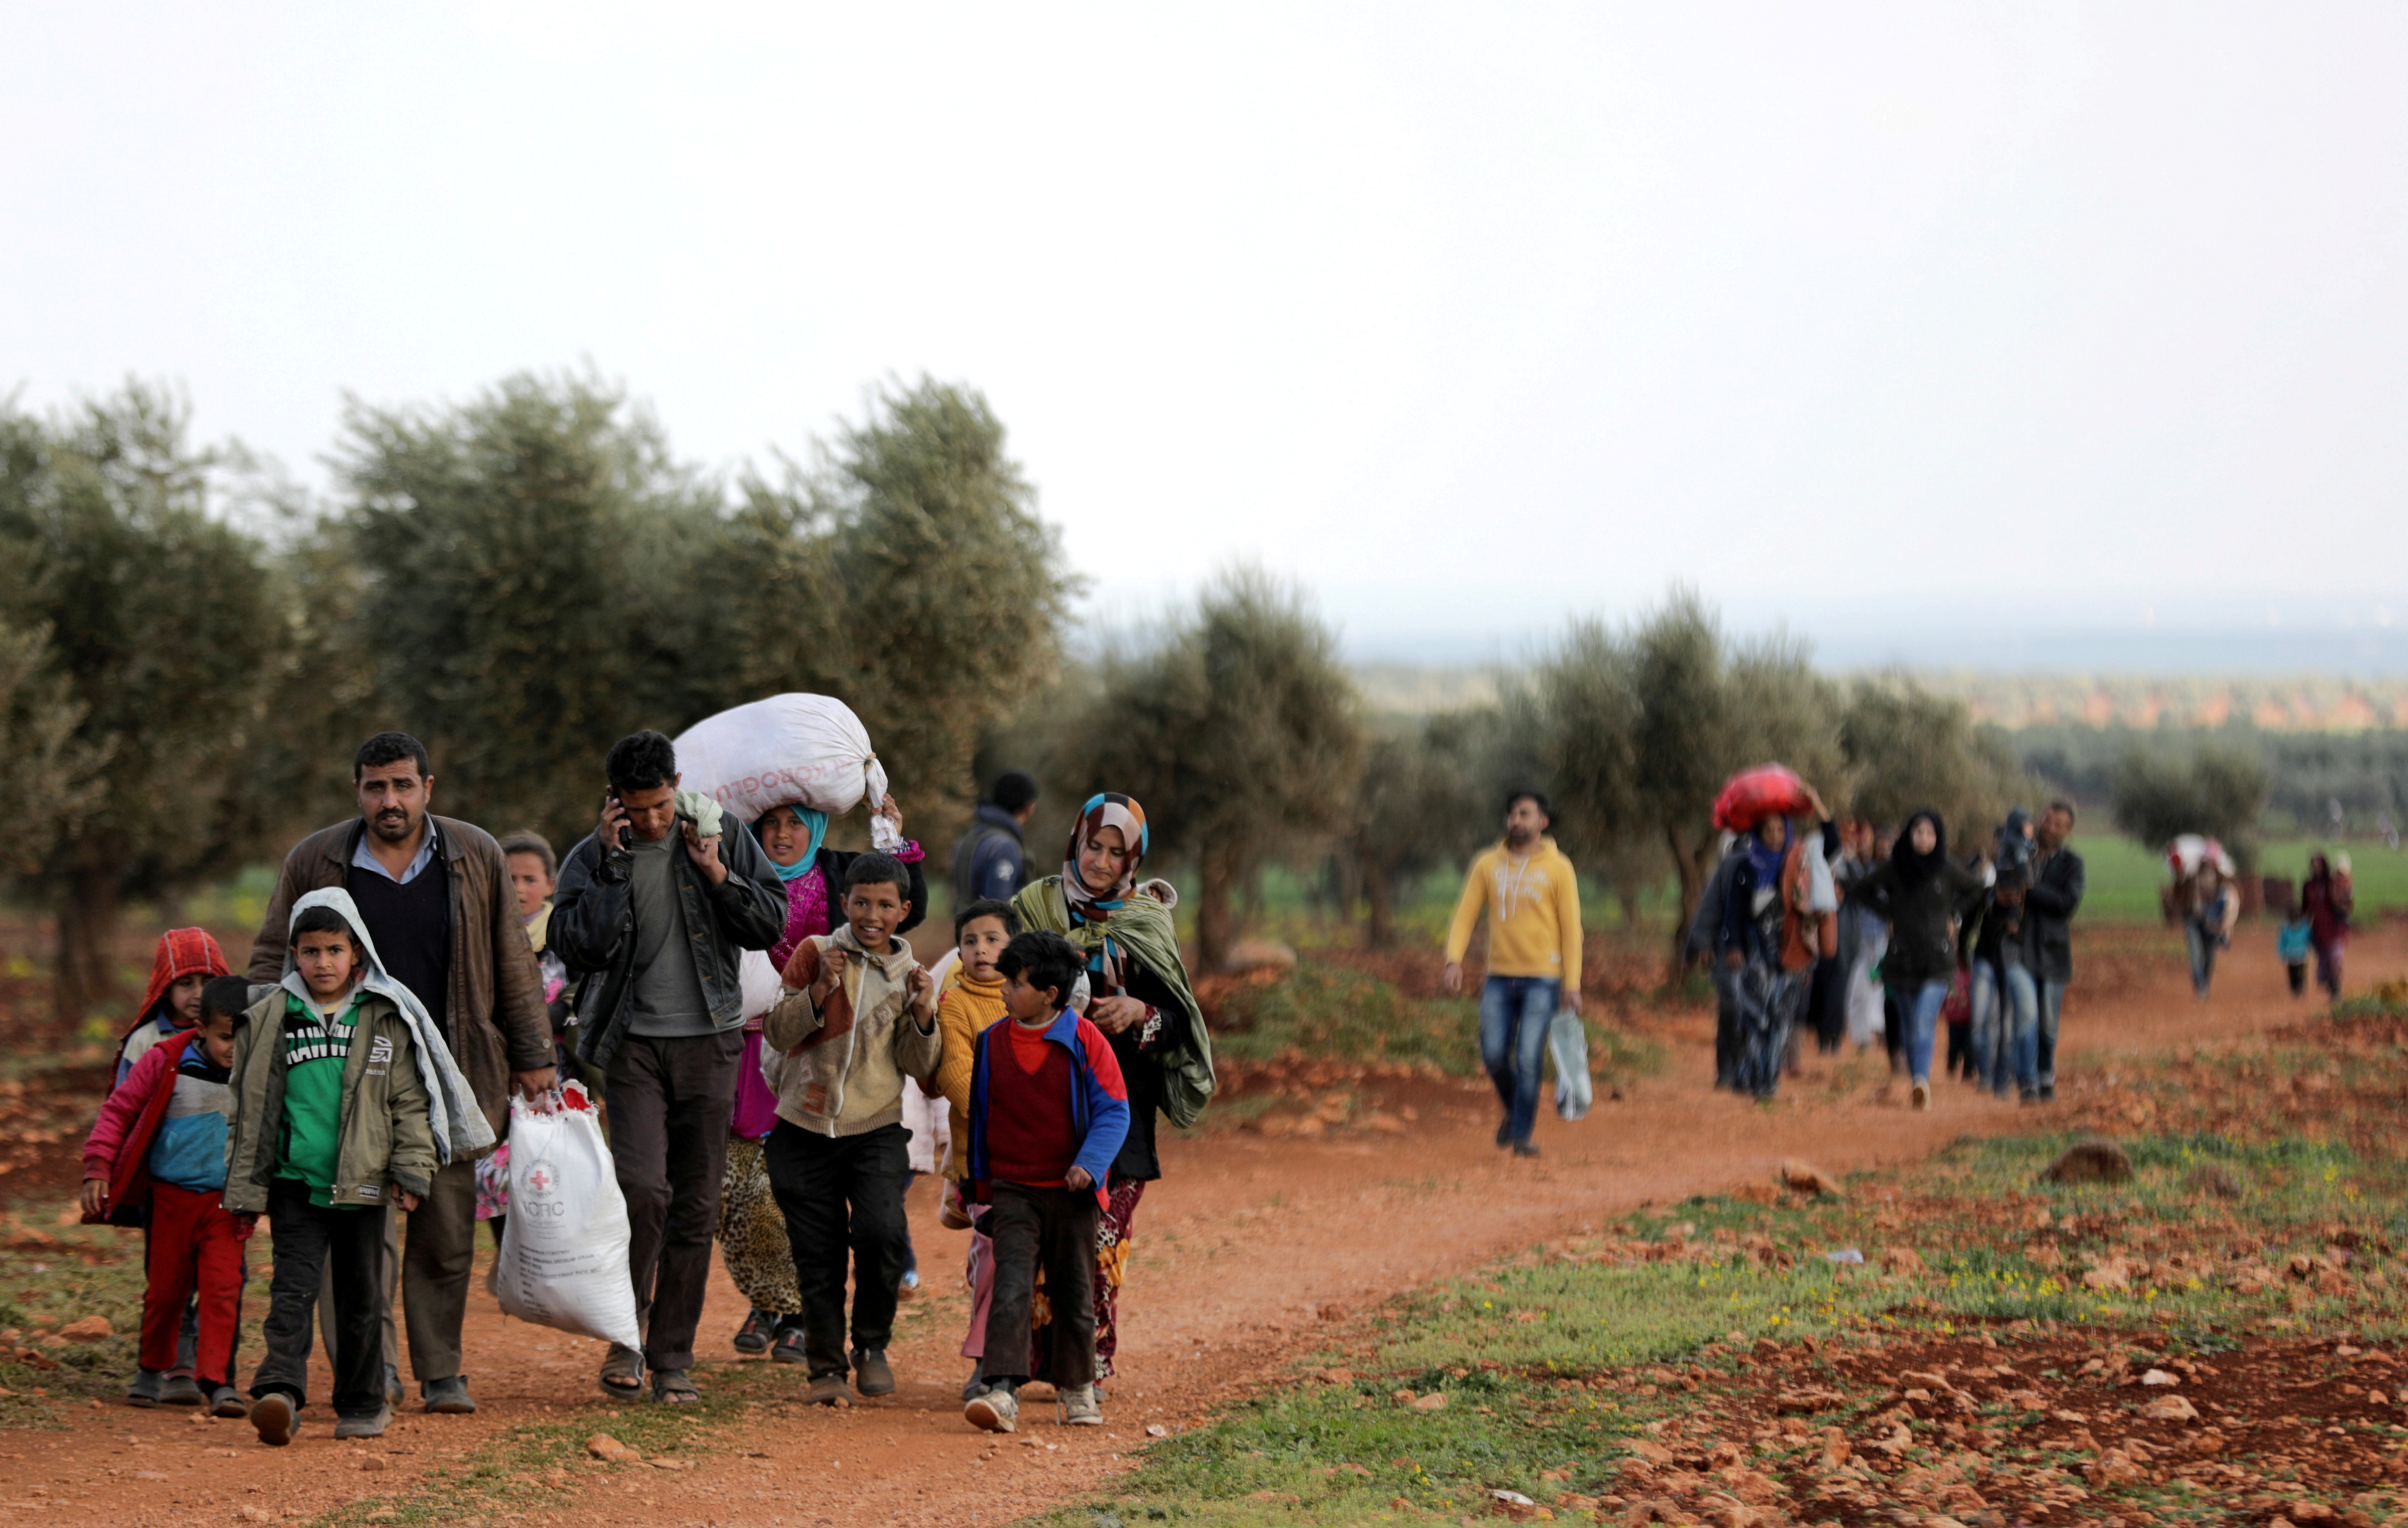 Internally displaced people walk with their belongings in the town of Inab, eastern Afrin, Syria, March 14, 2018.